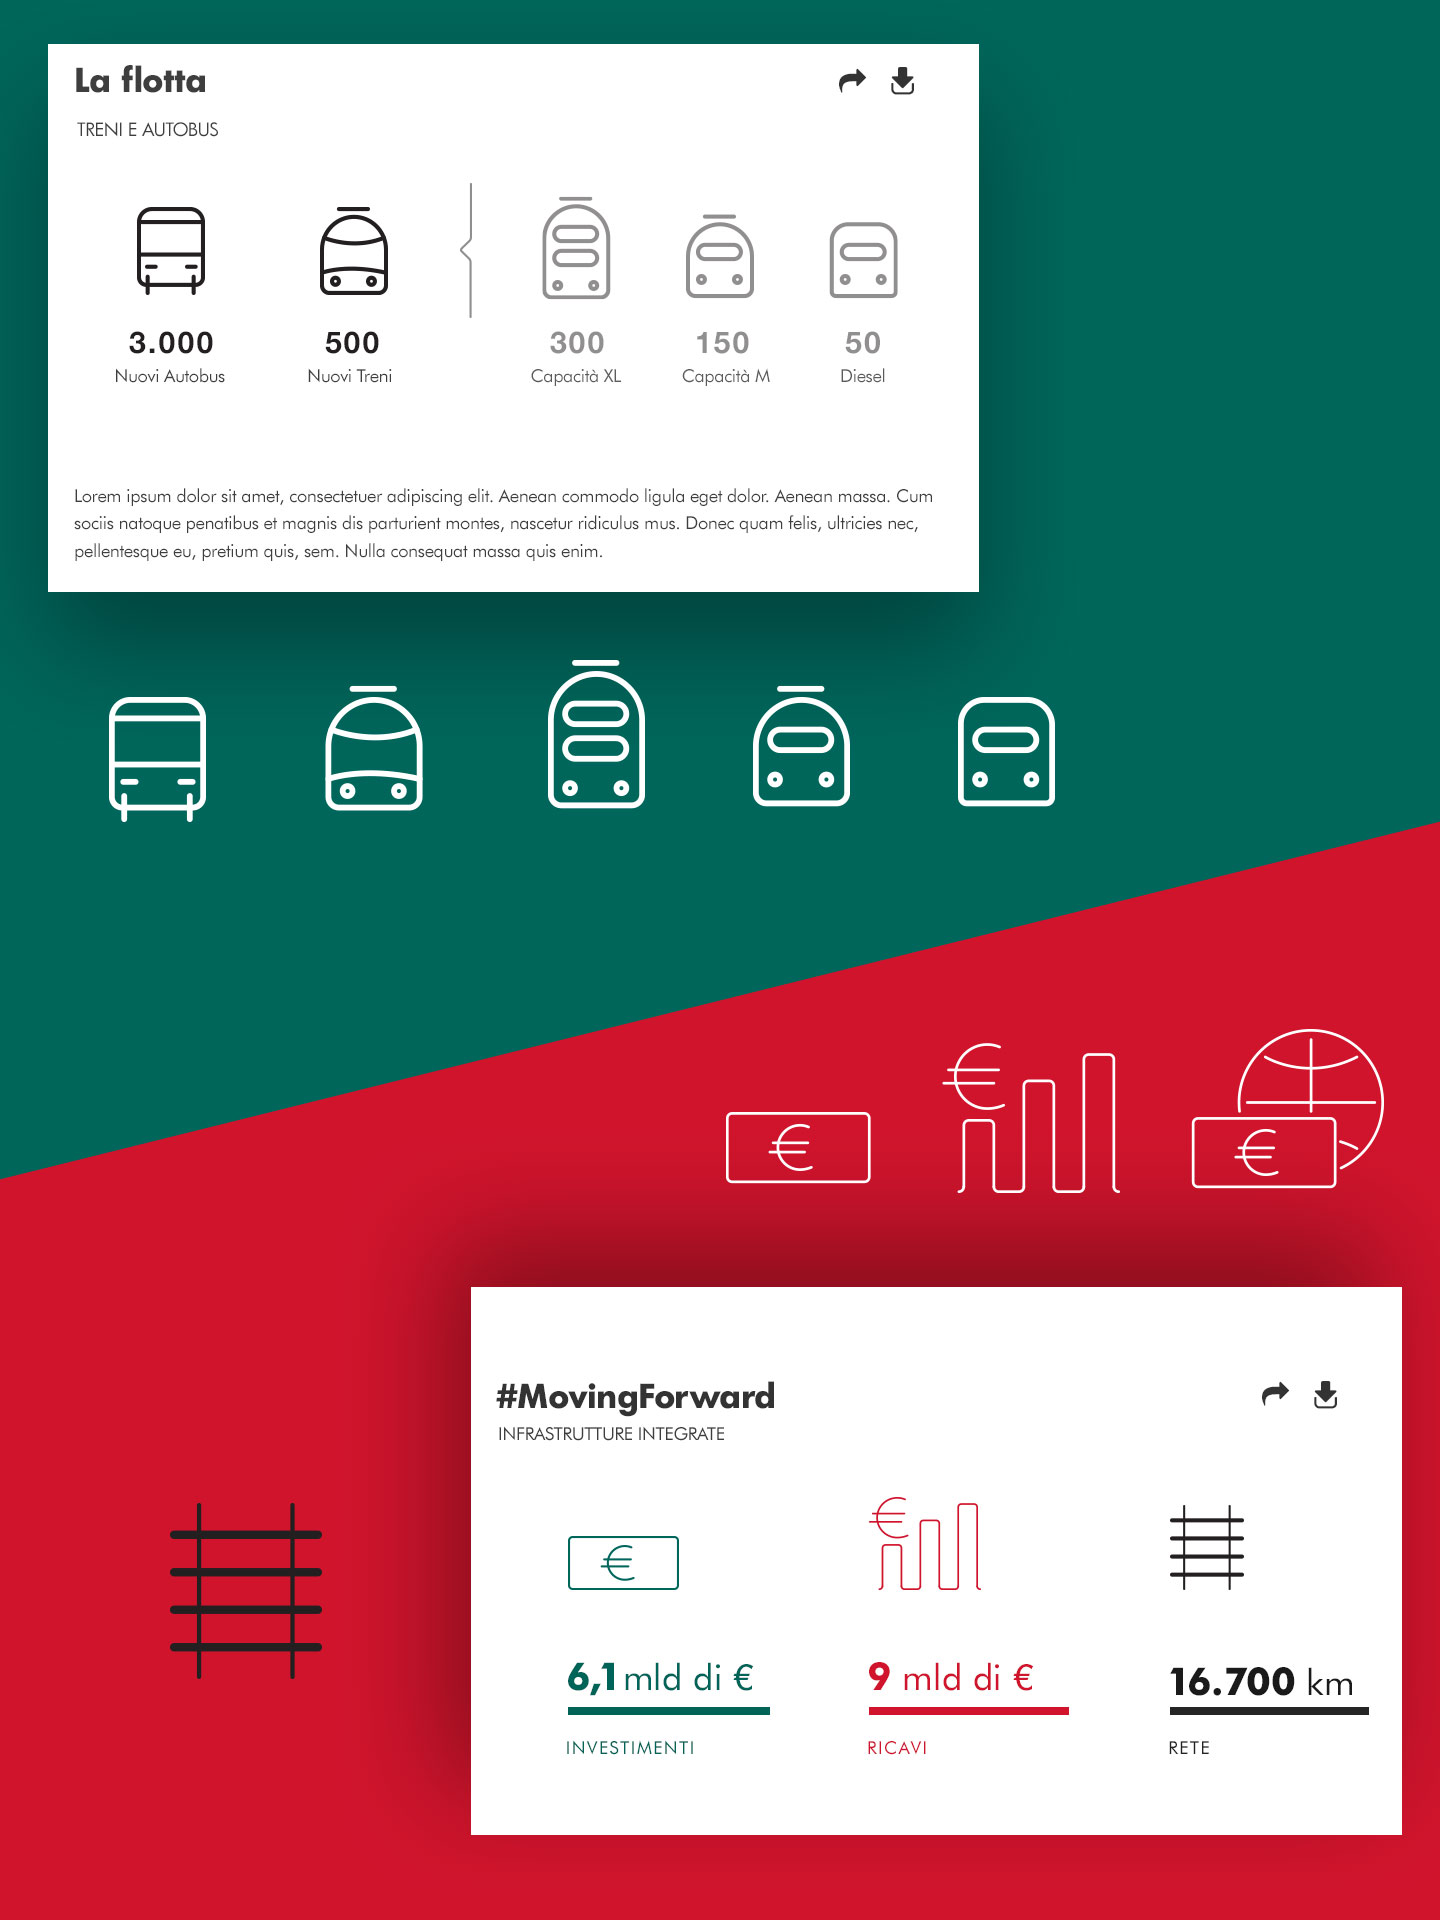 investor relations FS grafico milano iconset